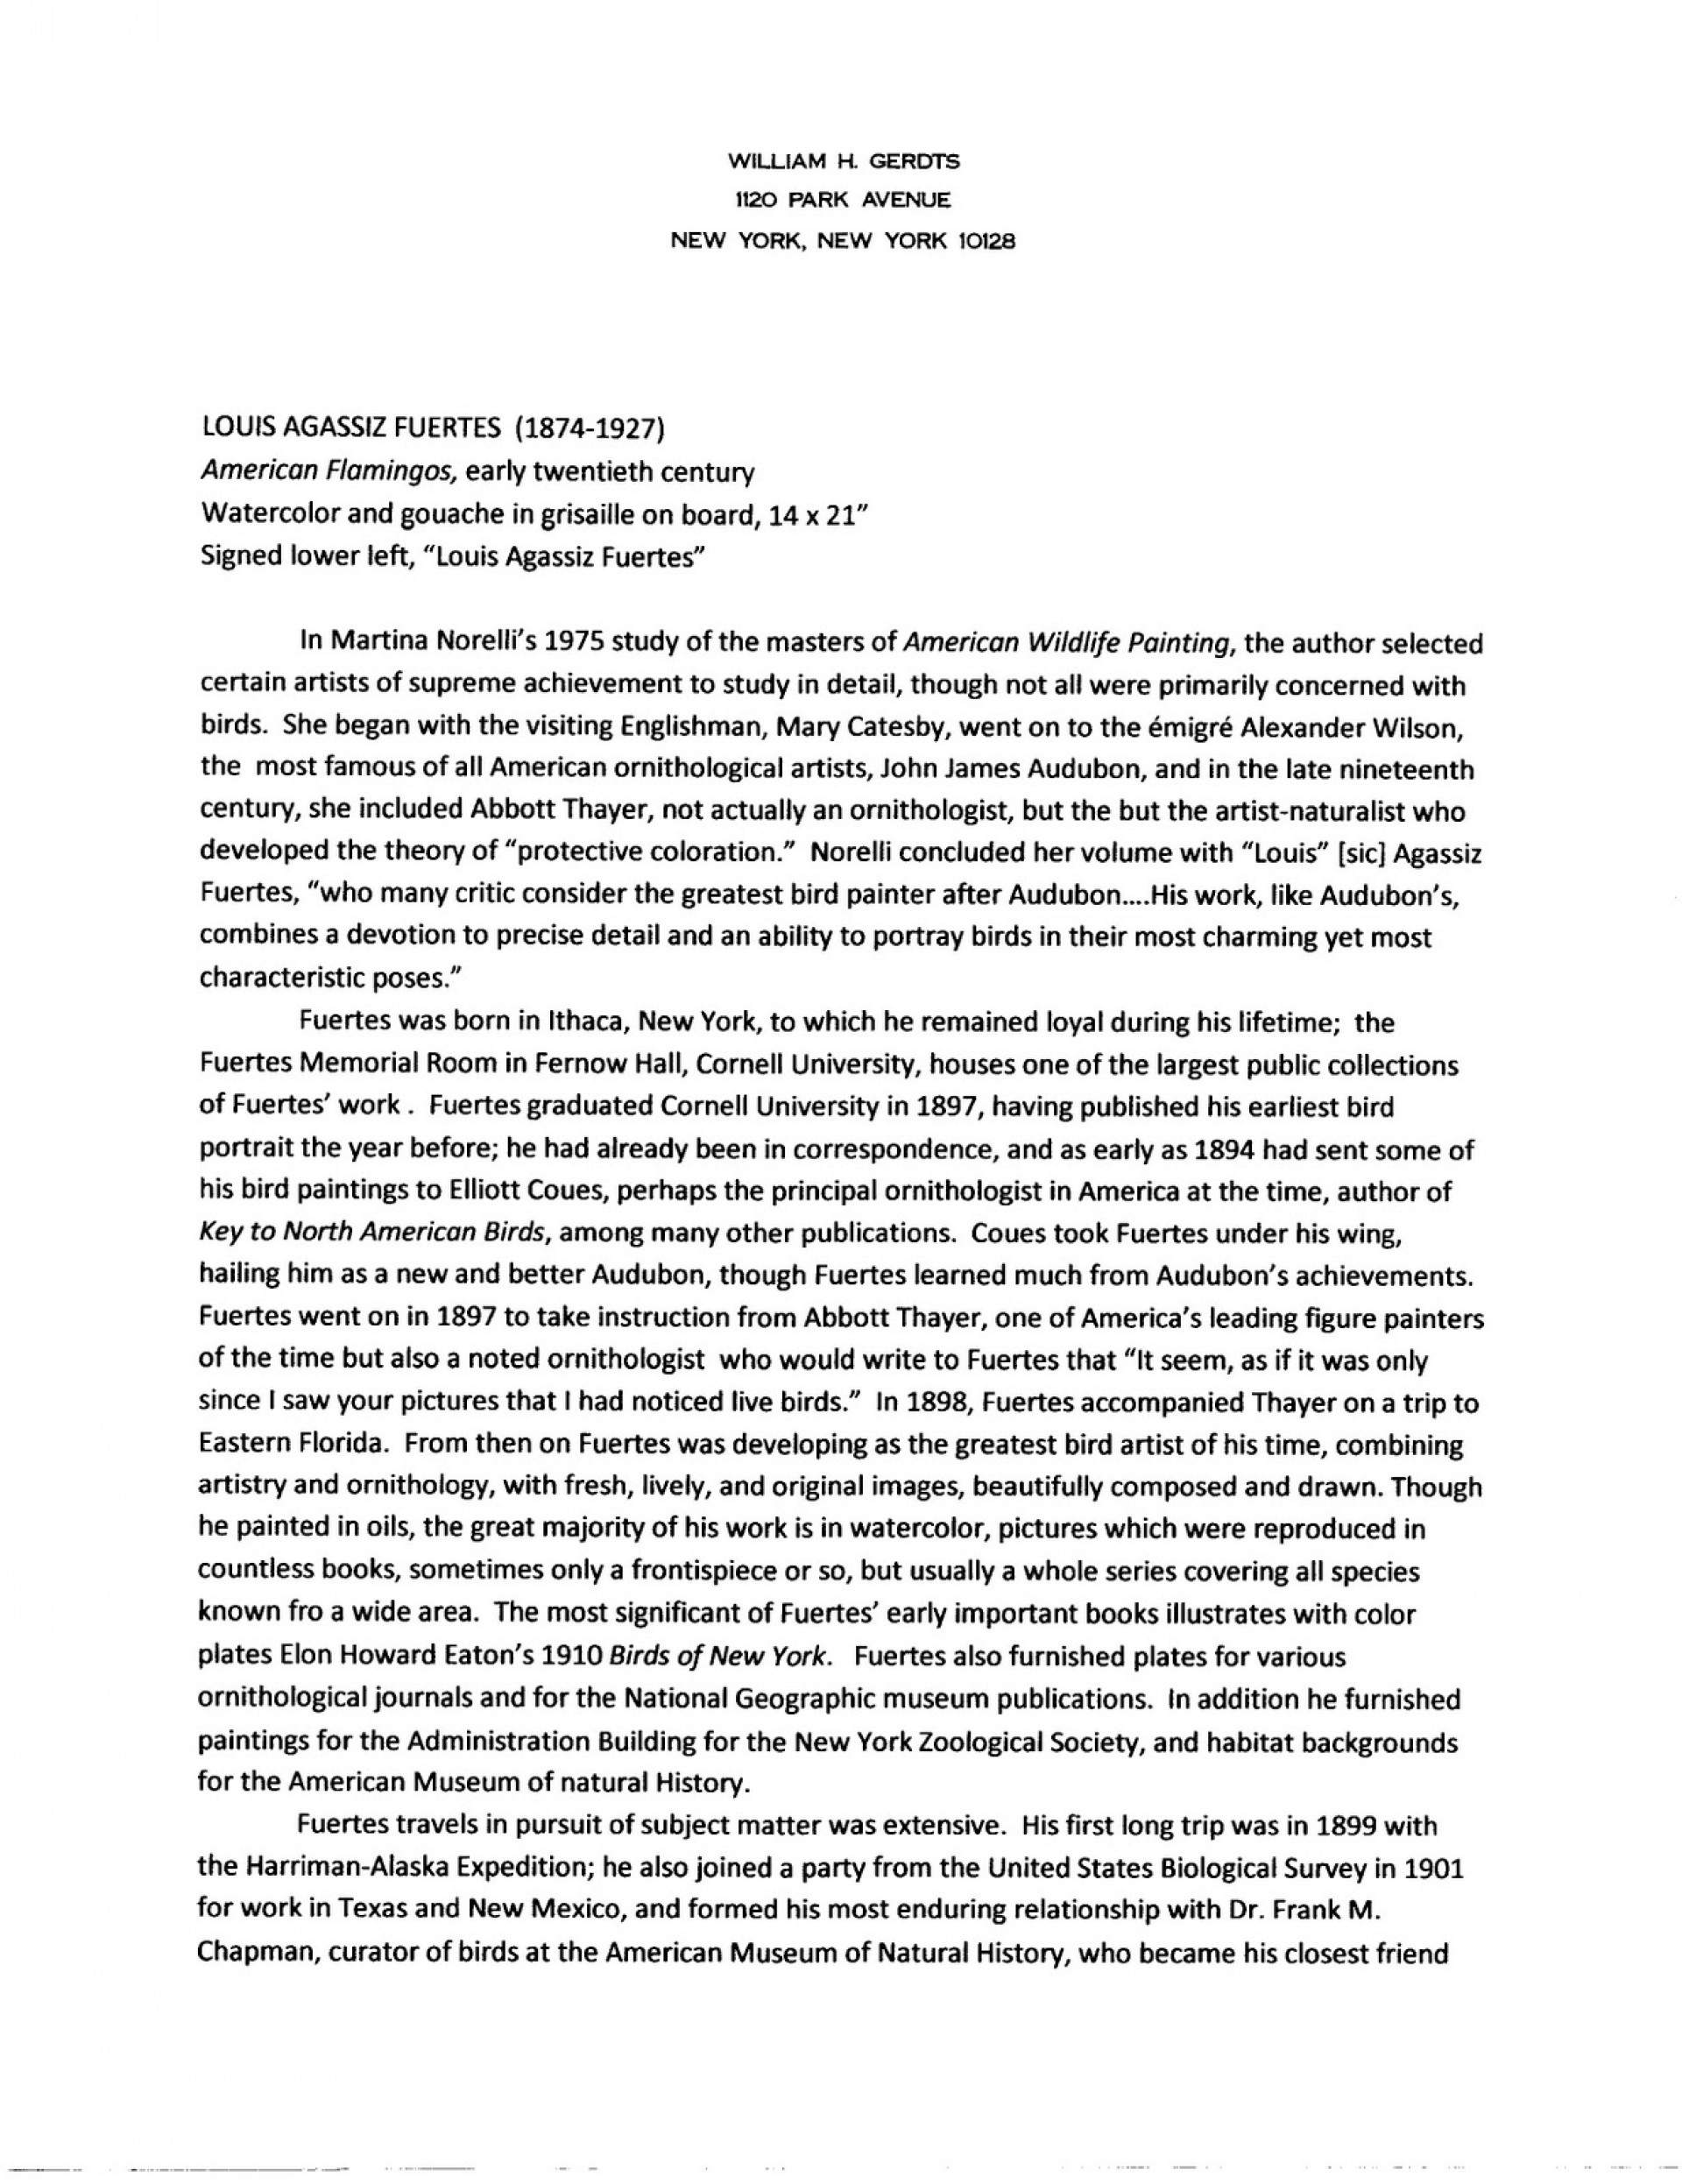 024 Personal Essay Outline Example Formidable Narrative Examples Template 1920